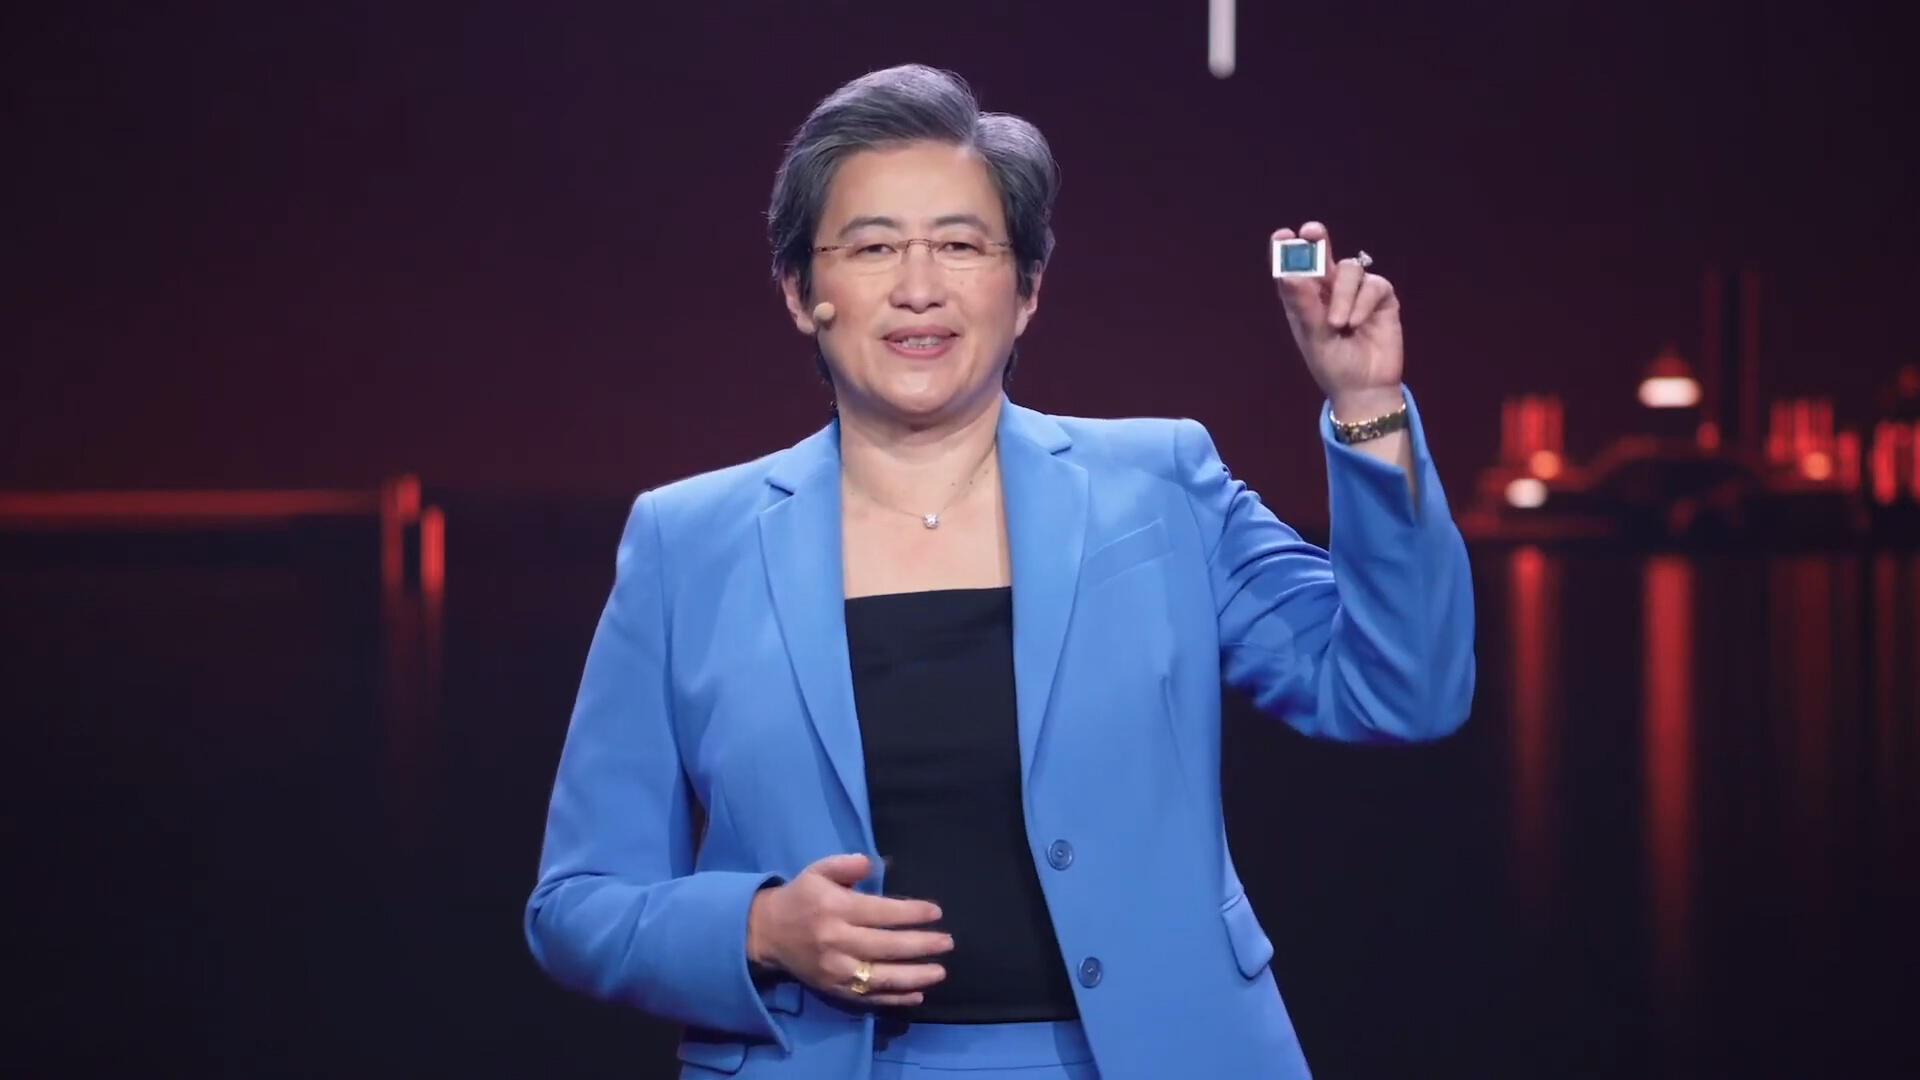 Video: AMD unveils Ryzen 5000 chip for gaming laptops